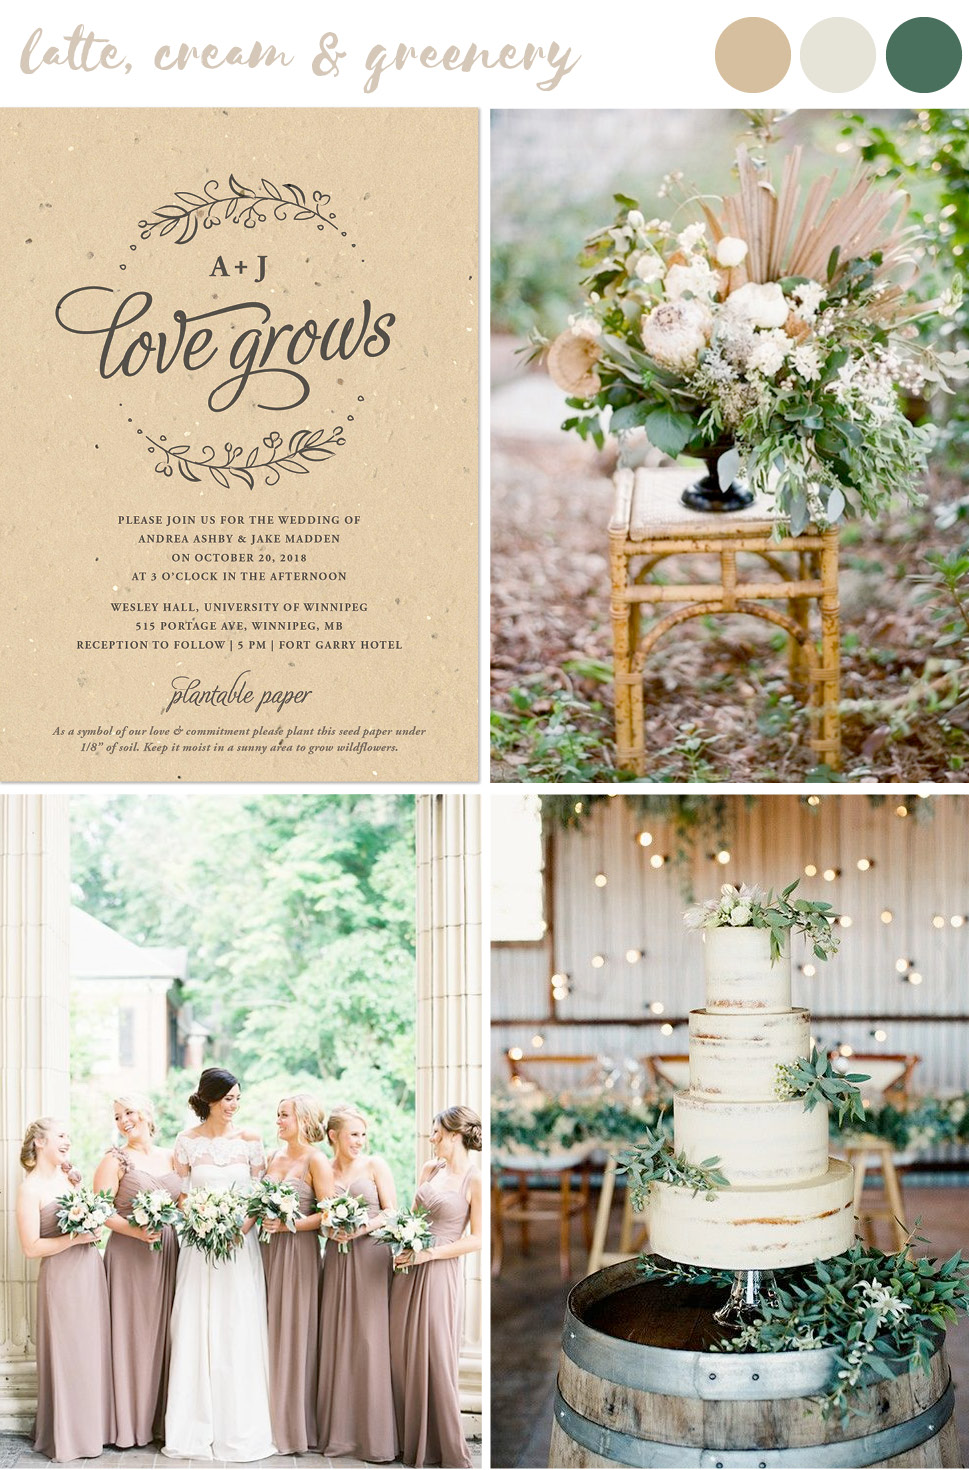 Find wedding color inspiration like this natural look of latte, cream and greenery for stylish and trendy summer weddings.